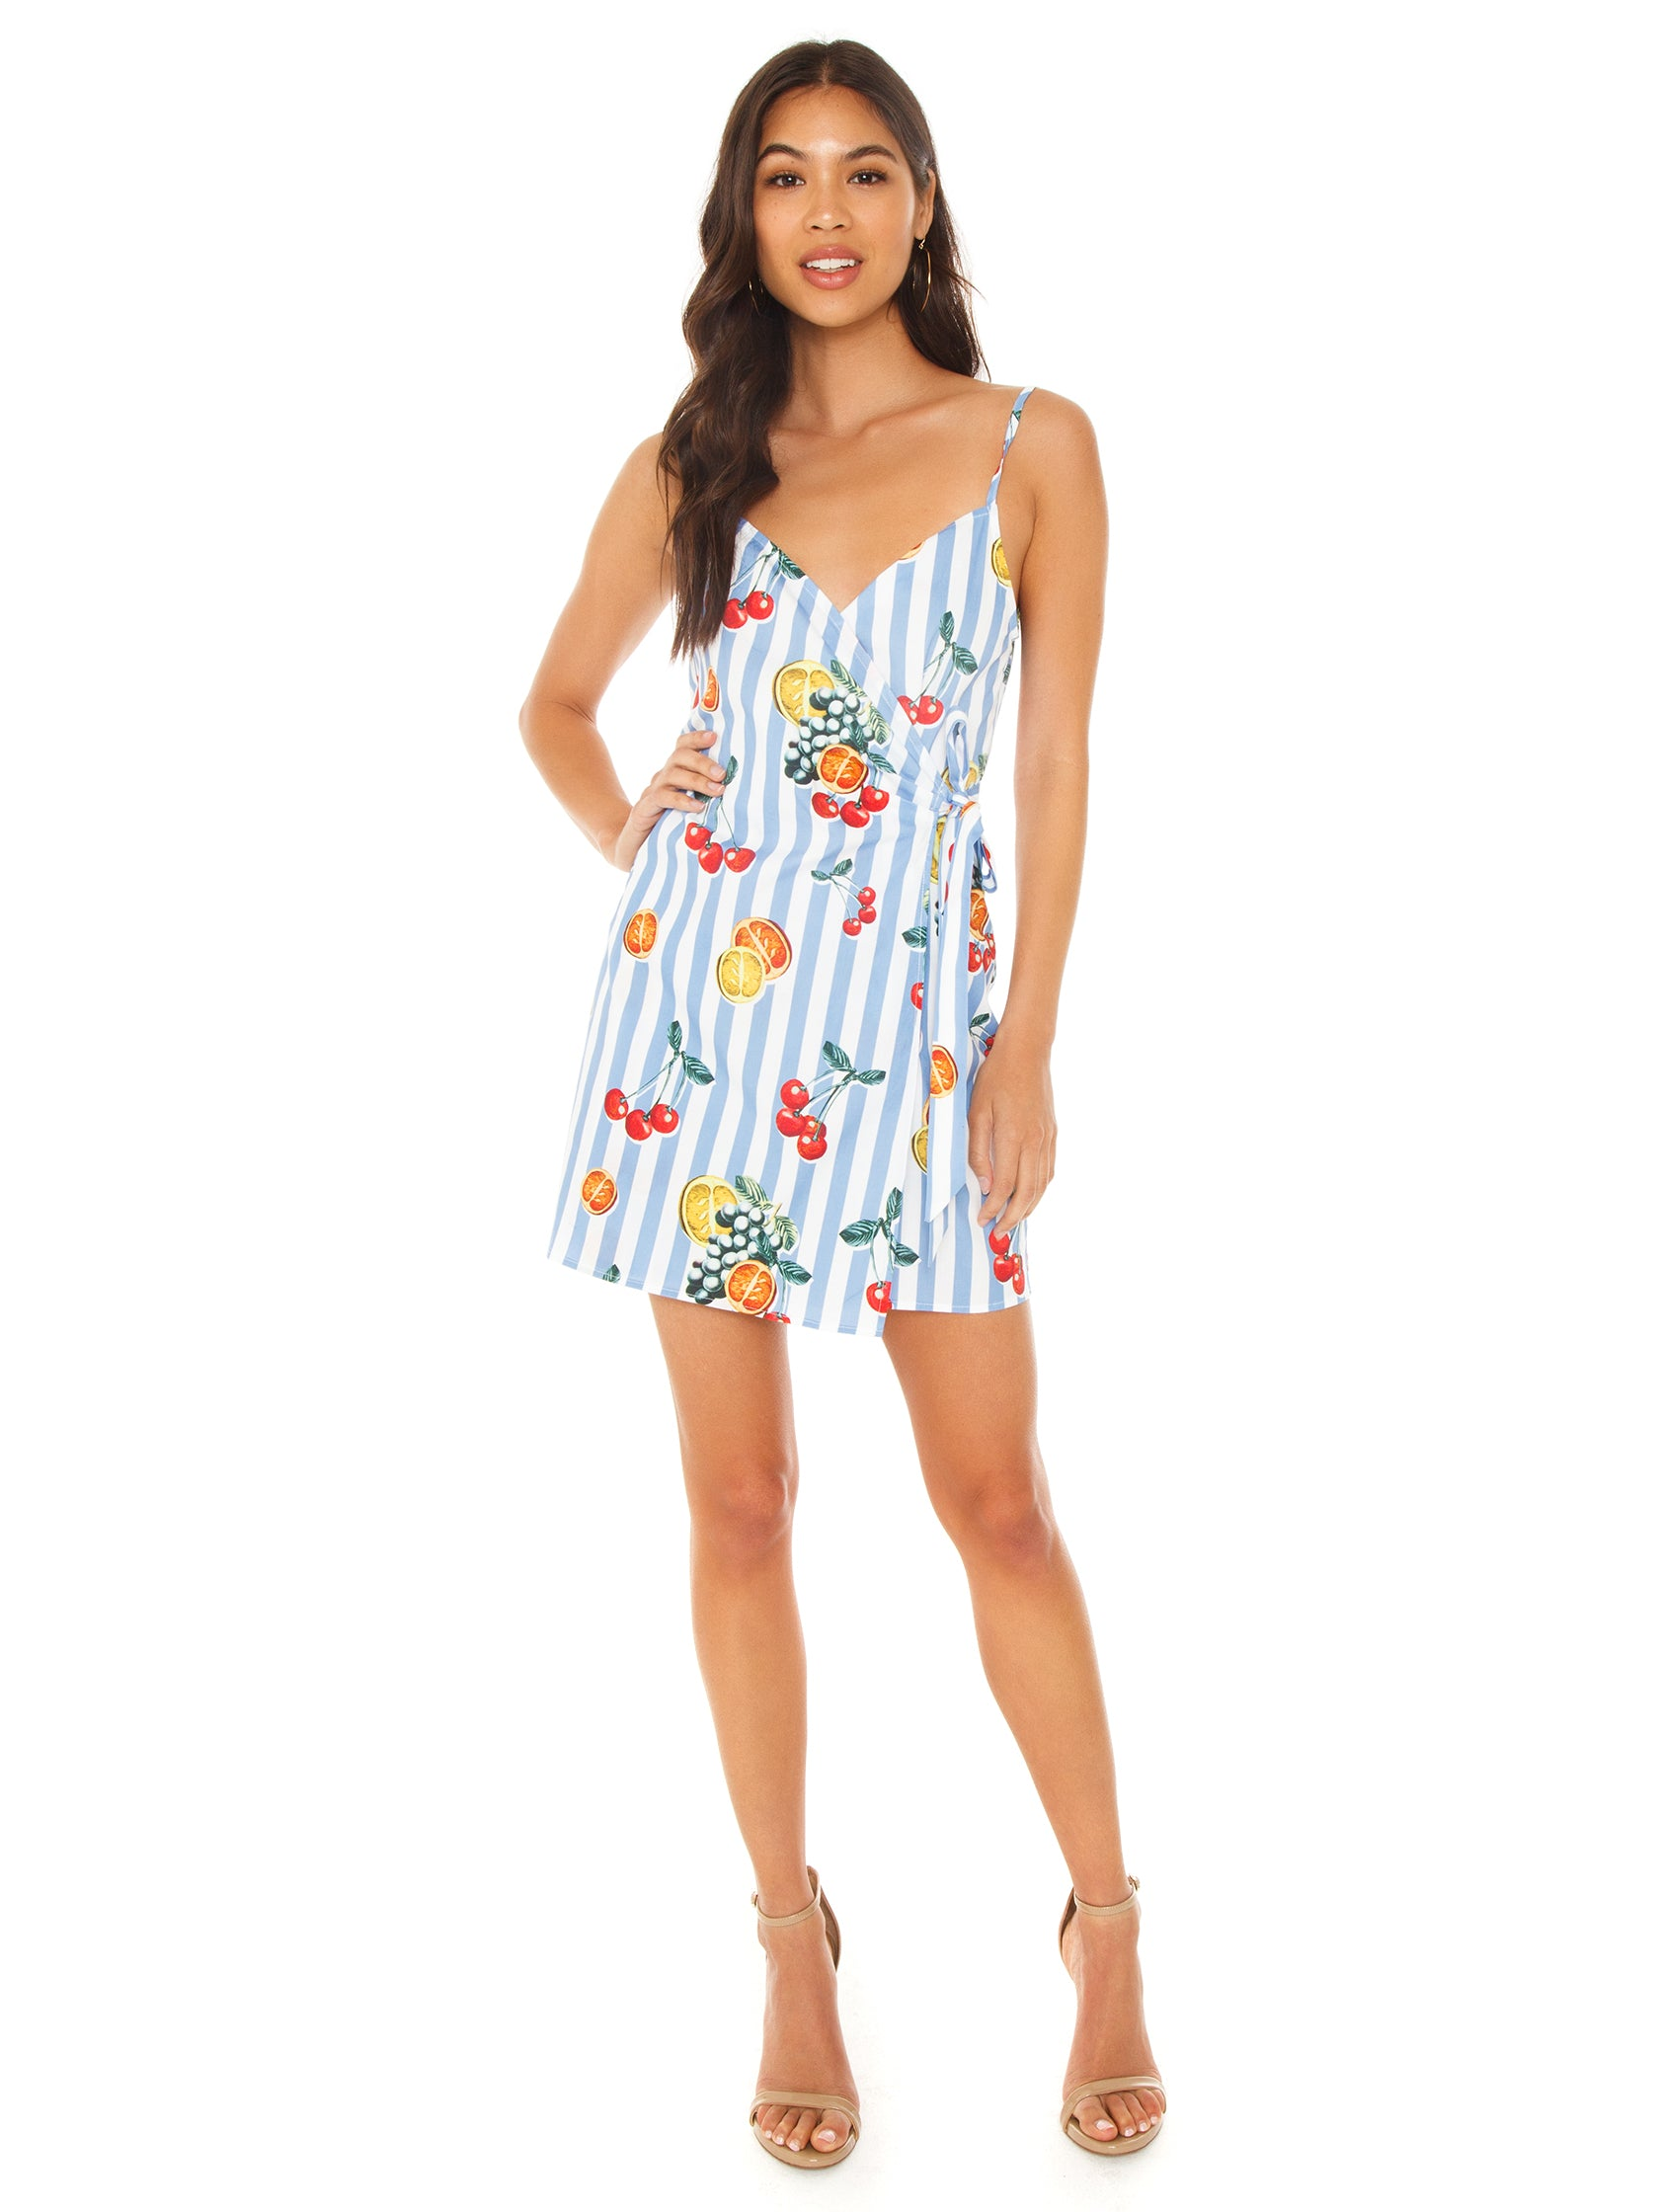 Girl outfit in a romper rental from Show Me Your Mumu called Addison Romper